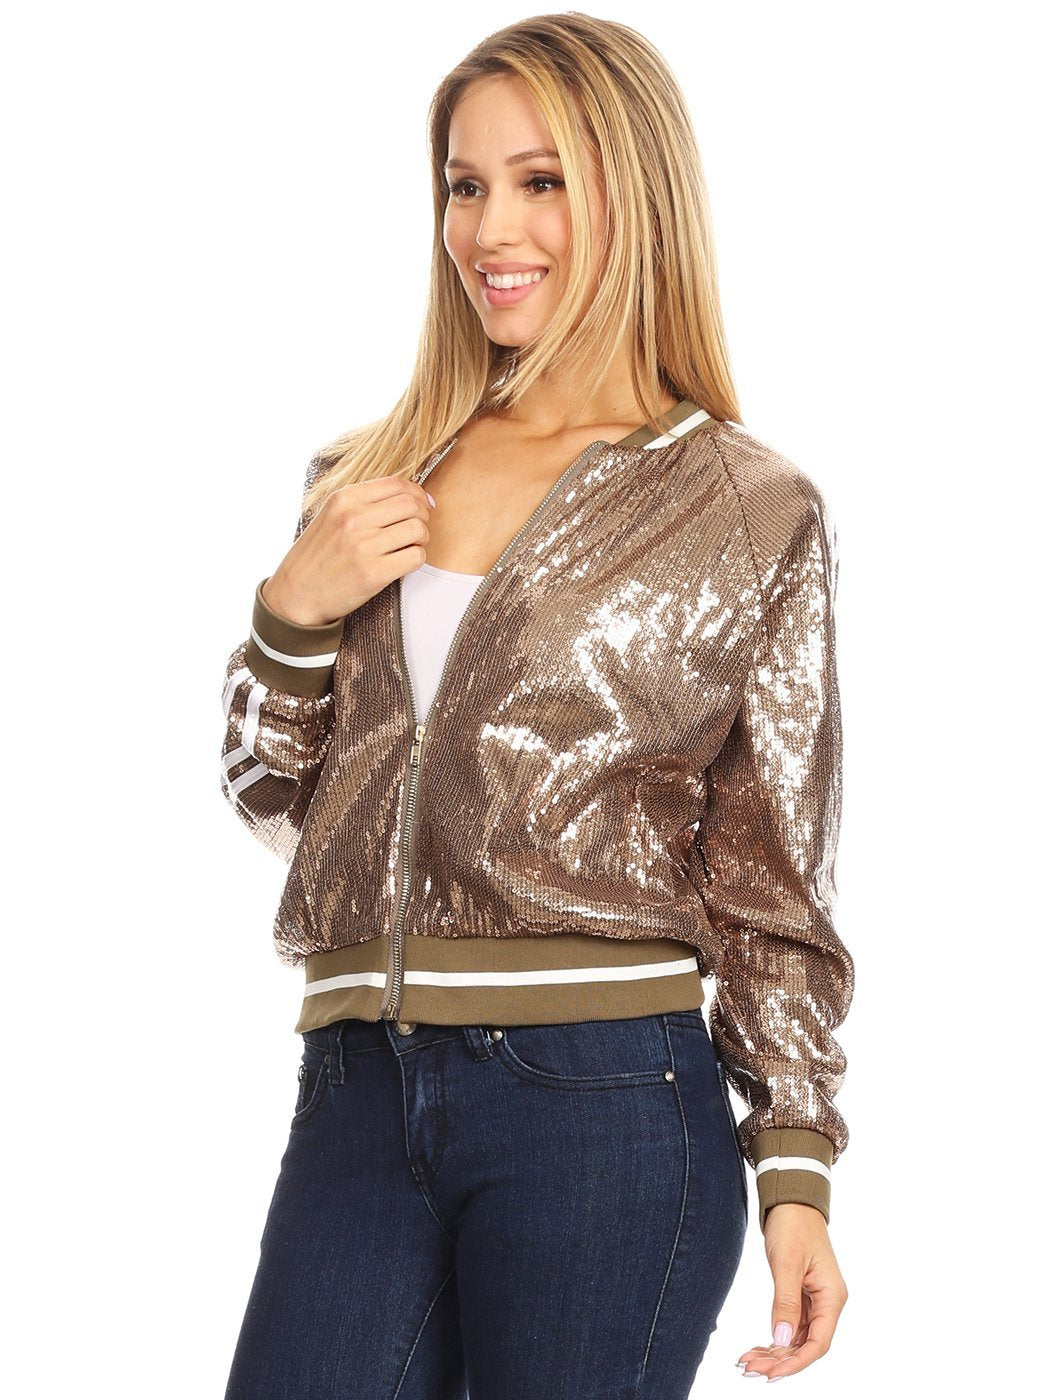 Glittery Sequin Jacket